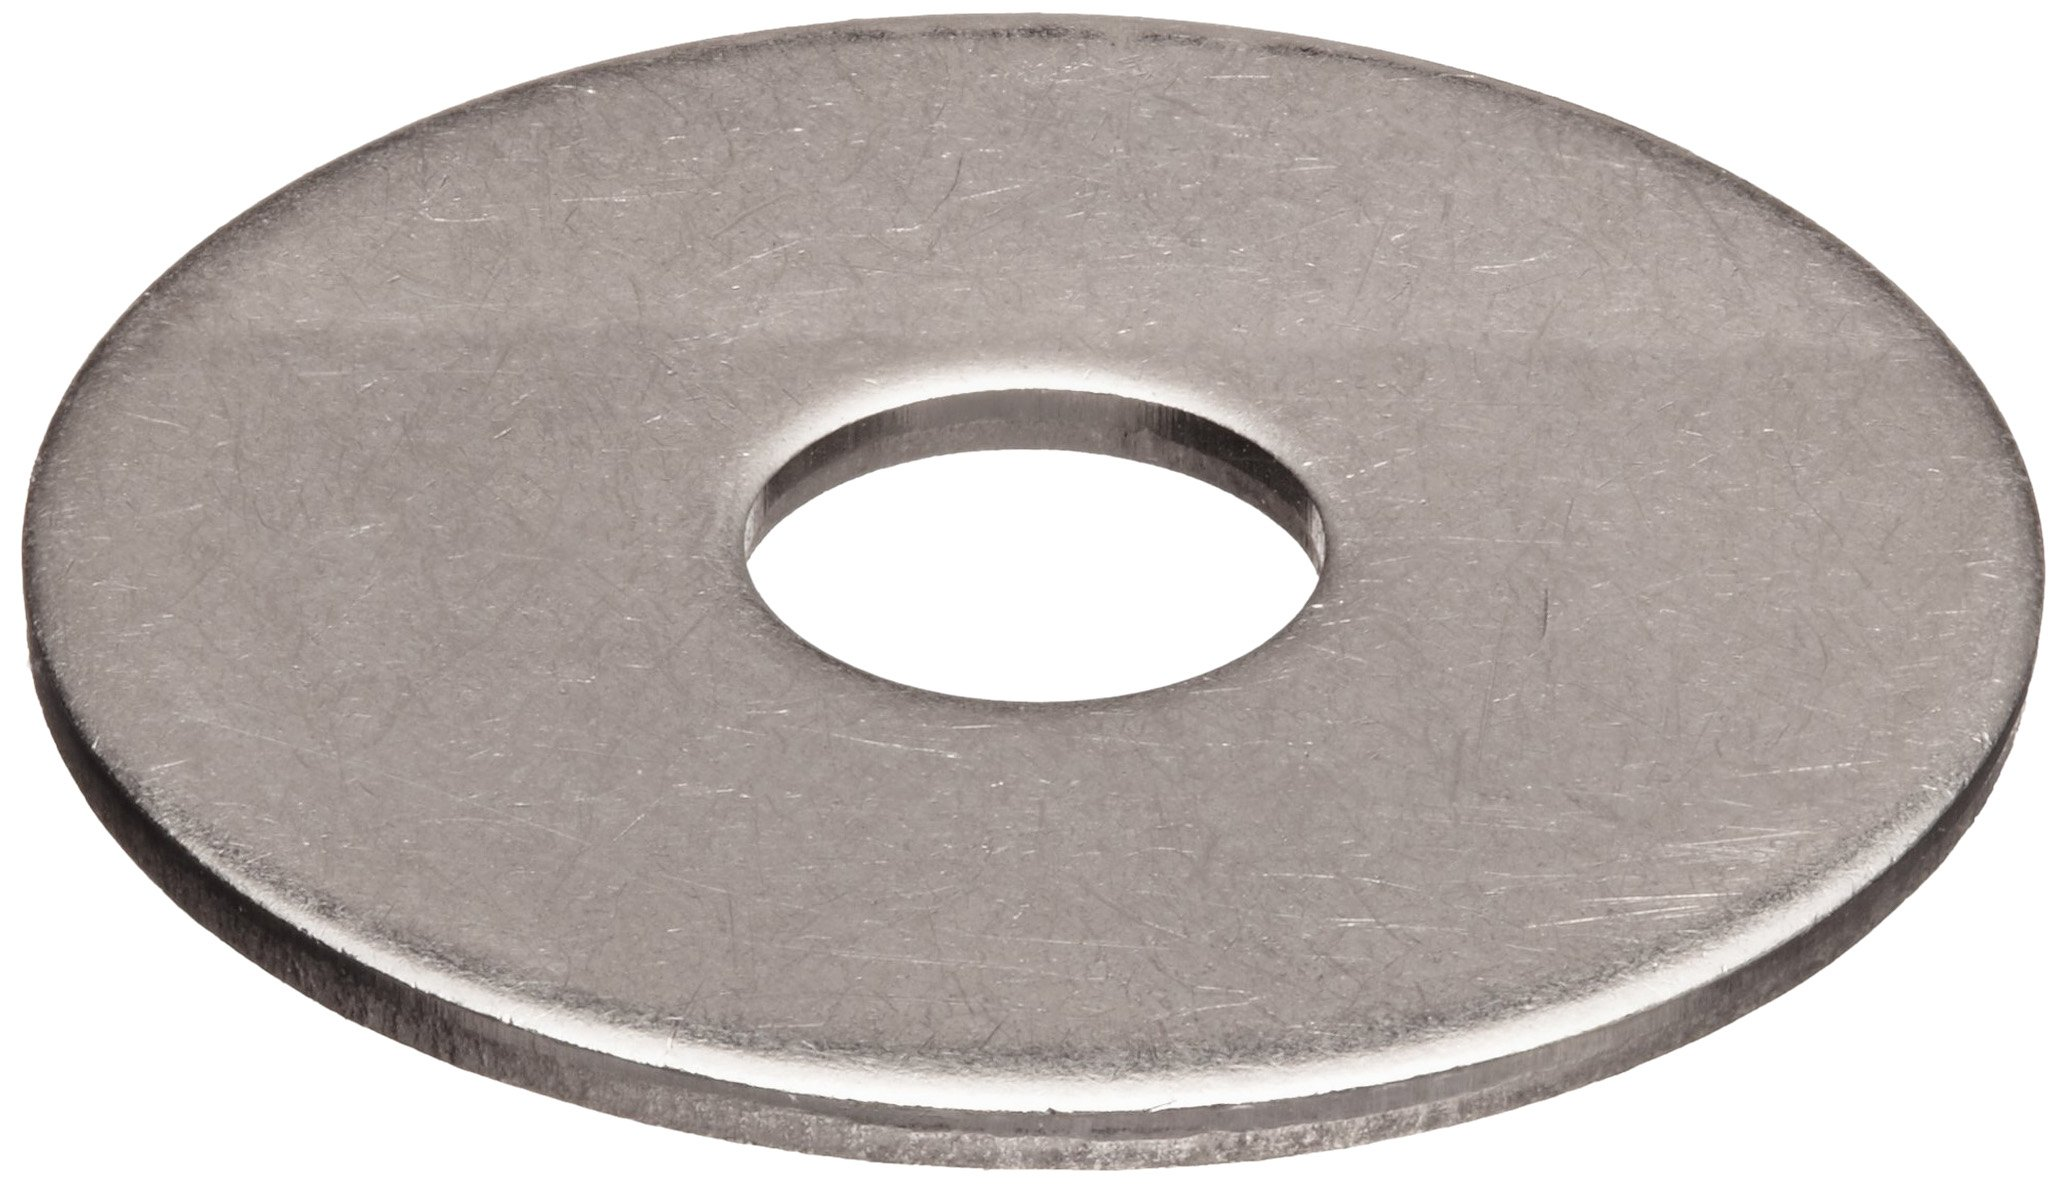 18-8 Stainless Steel Flat Washer, 1/4'' Hole Size, 0.281'' ID, 2'' OD, 0.062'' Nominal Thickness, Made in US (Pack of 10) by Small Parts